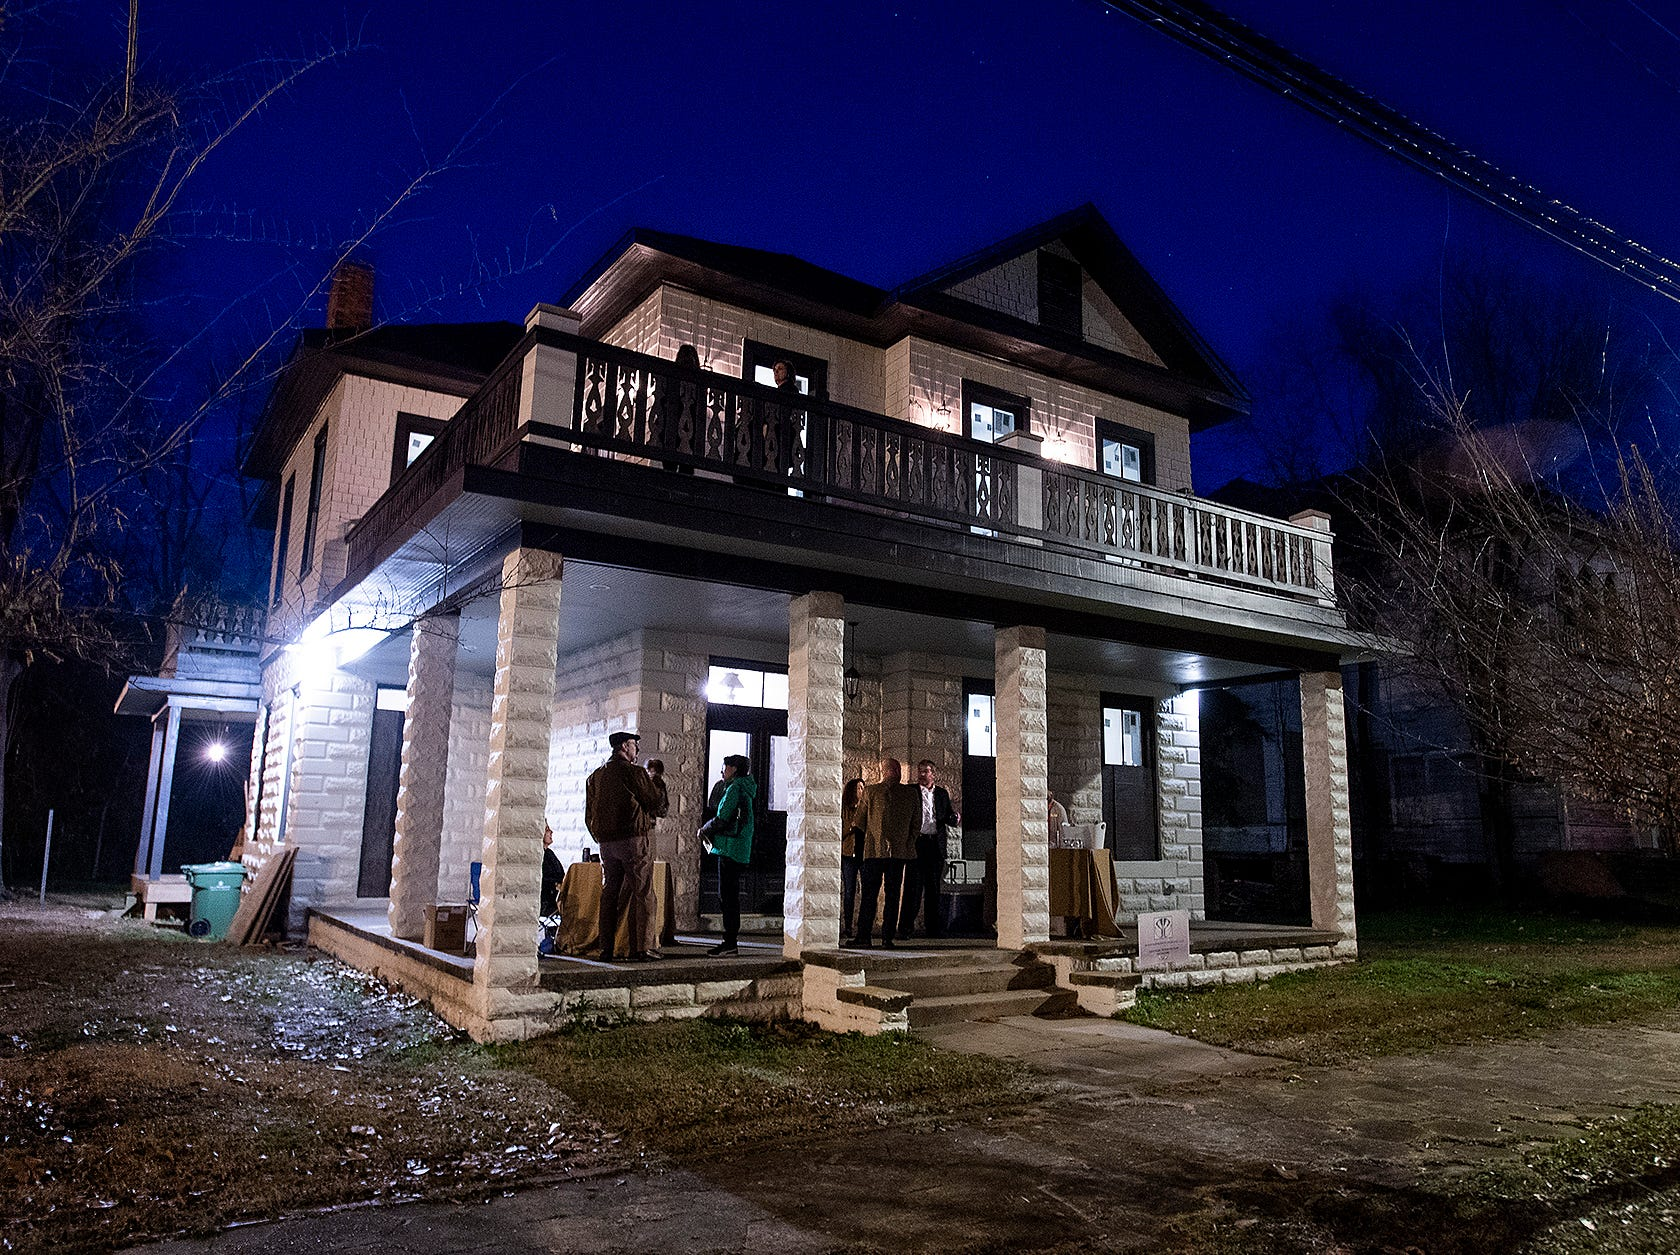 The home of the Hampton family on Goldthwaite St. in Montgomery, Ala., is opened for a Landmarks Foundation Renovators Open House on Thursday evening January 31, 2019.